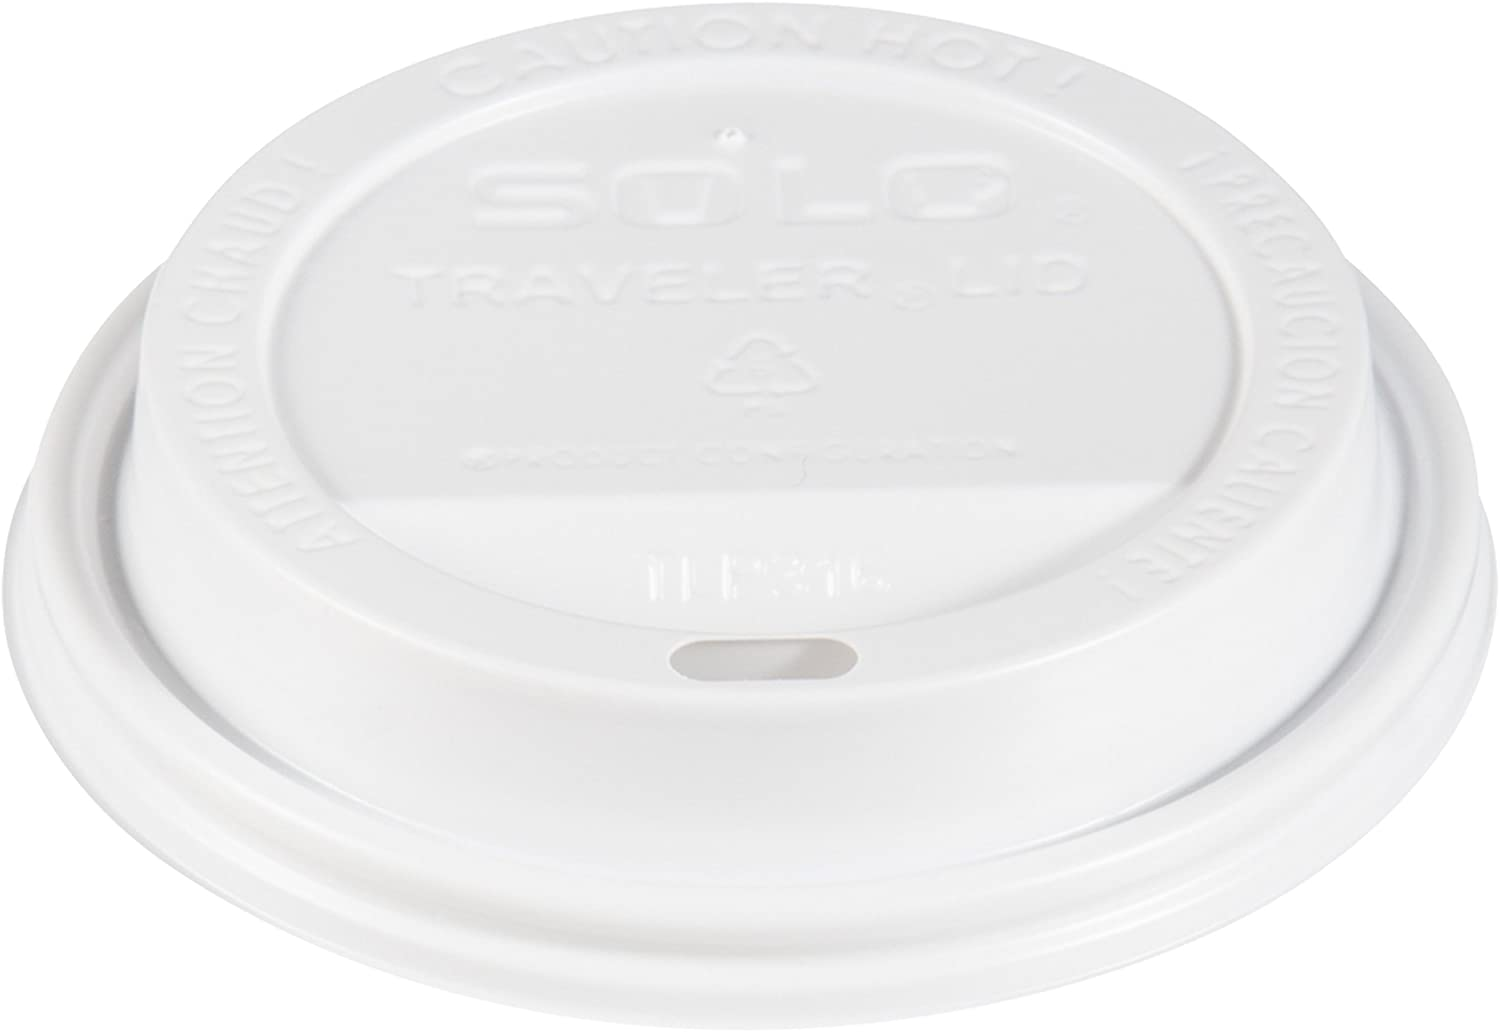 Solo TLP316-0007 White Traveler Plastic Lid - For Solo Paper Hot Cups (Case of 1000)